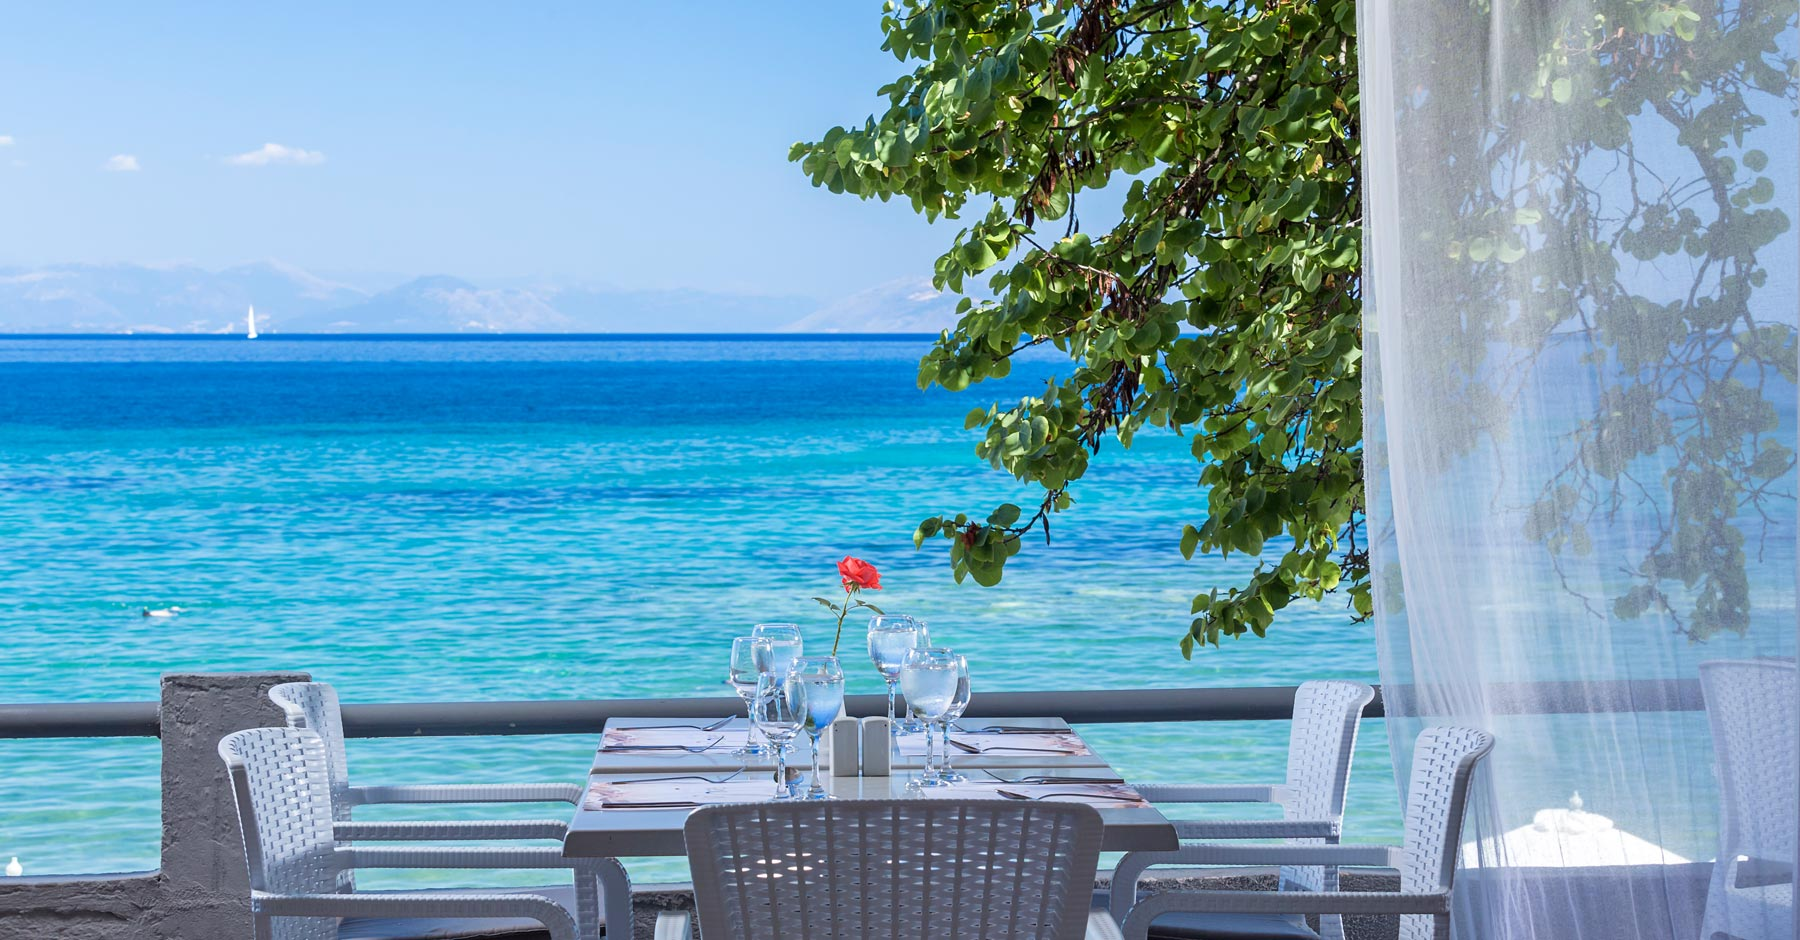 Aeolos Hotel - Restaurant View